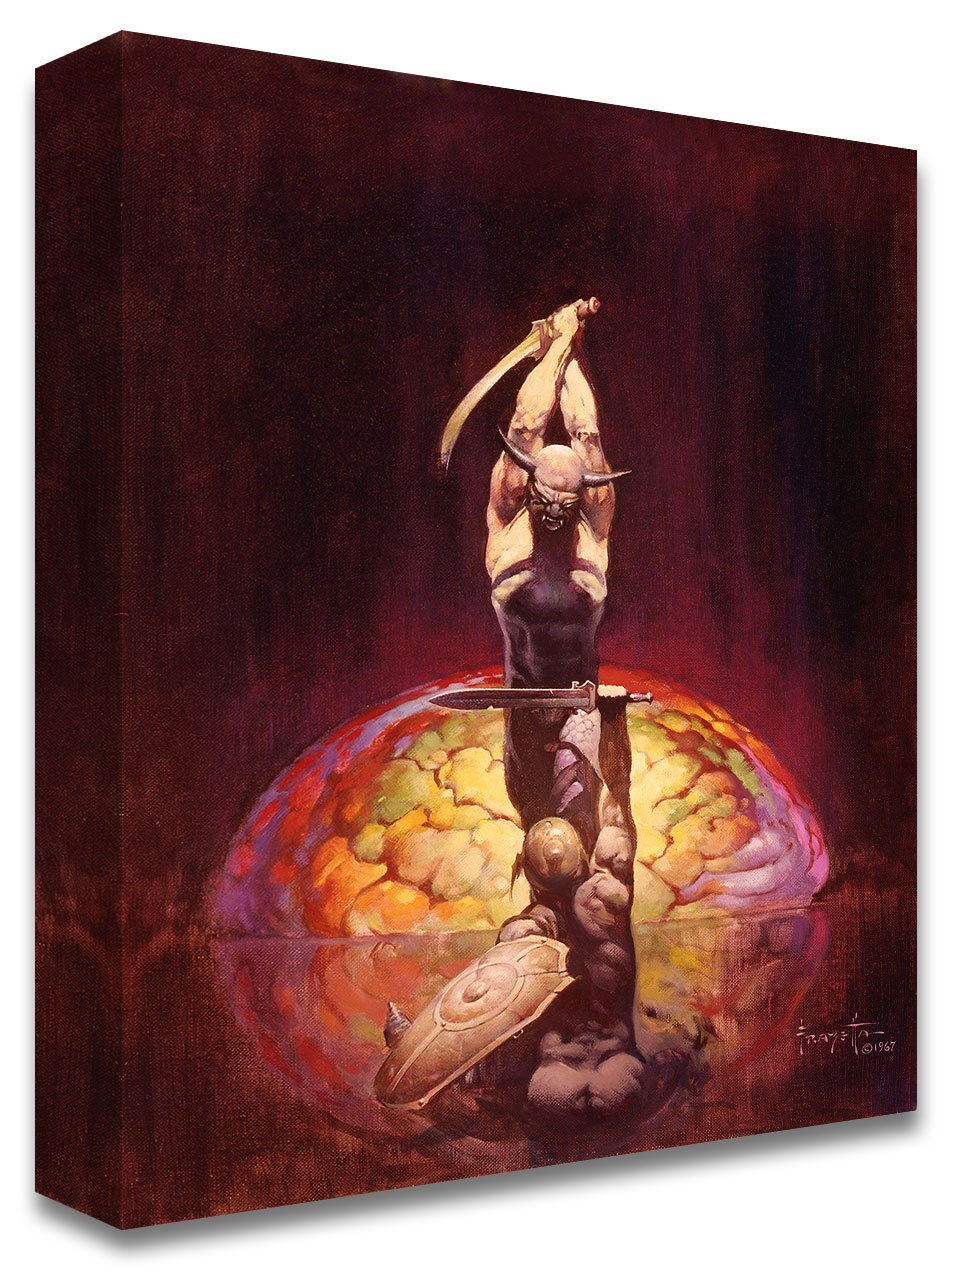 Frazetta Girls, LLC  Art Print Canvas / Stretched on wooden bar / 18x24 The Brain Print